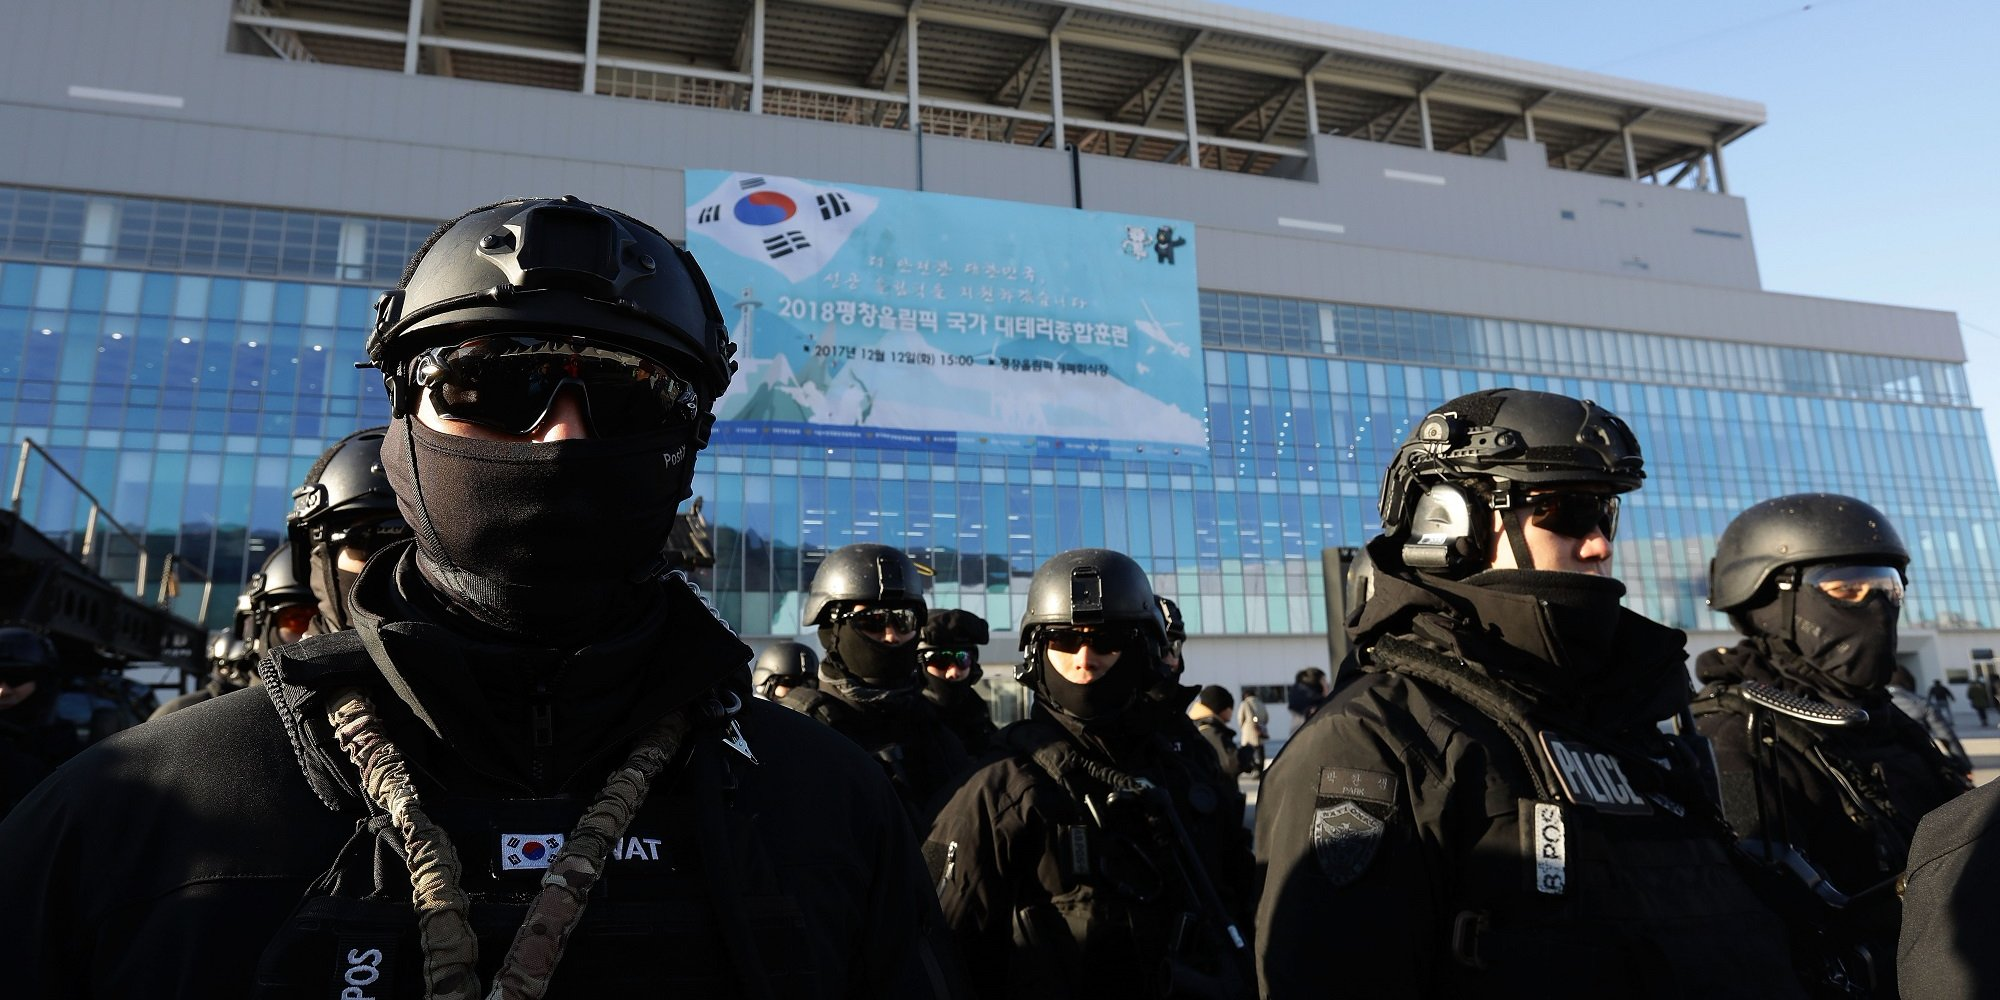 south korea security olympics